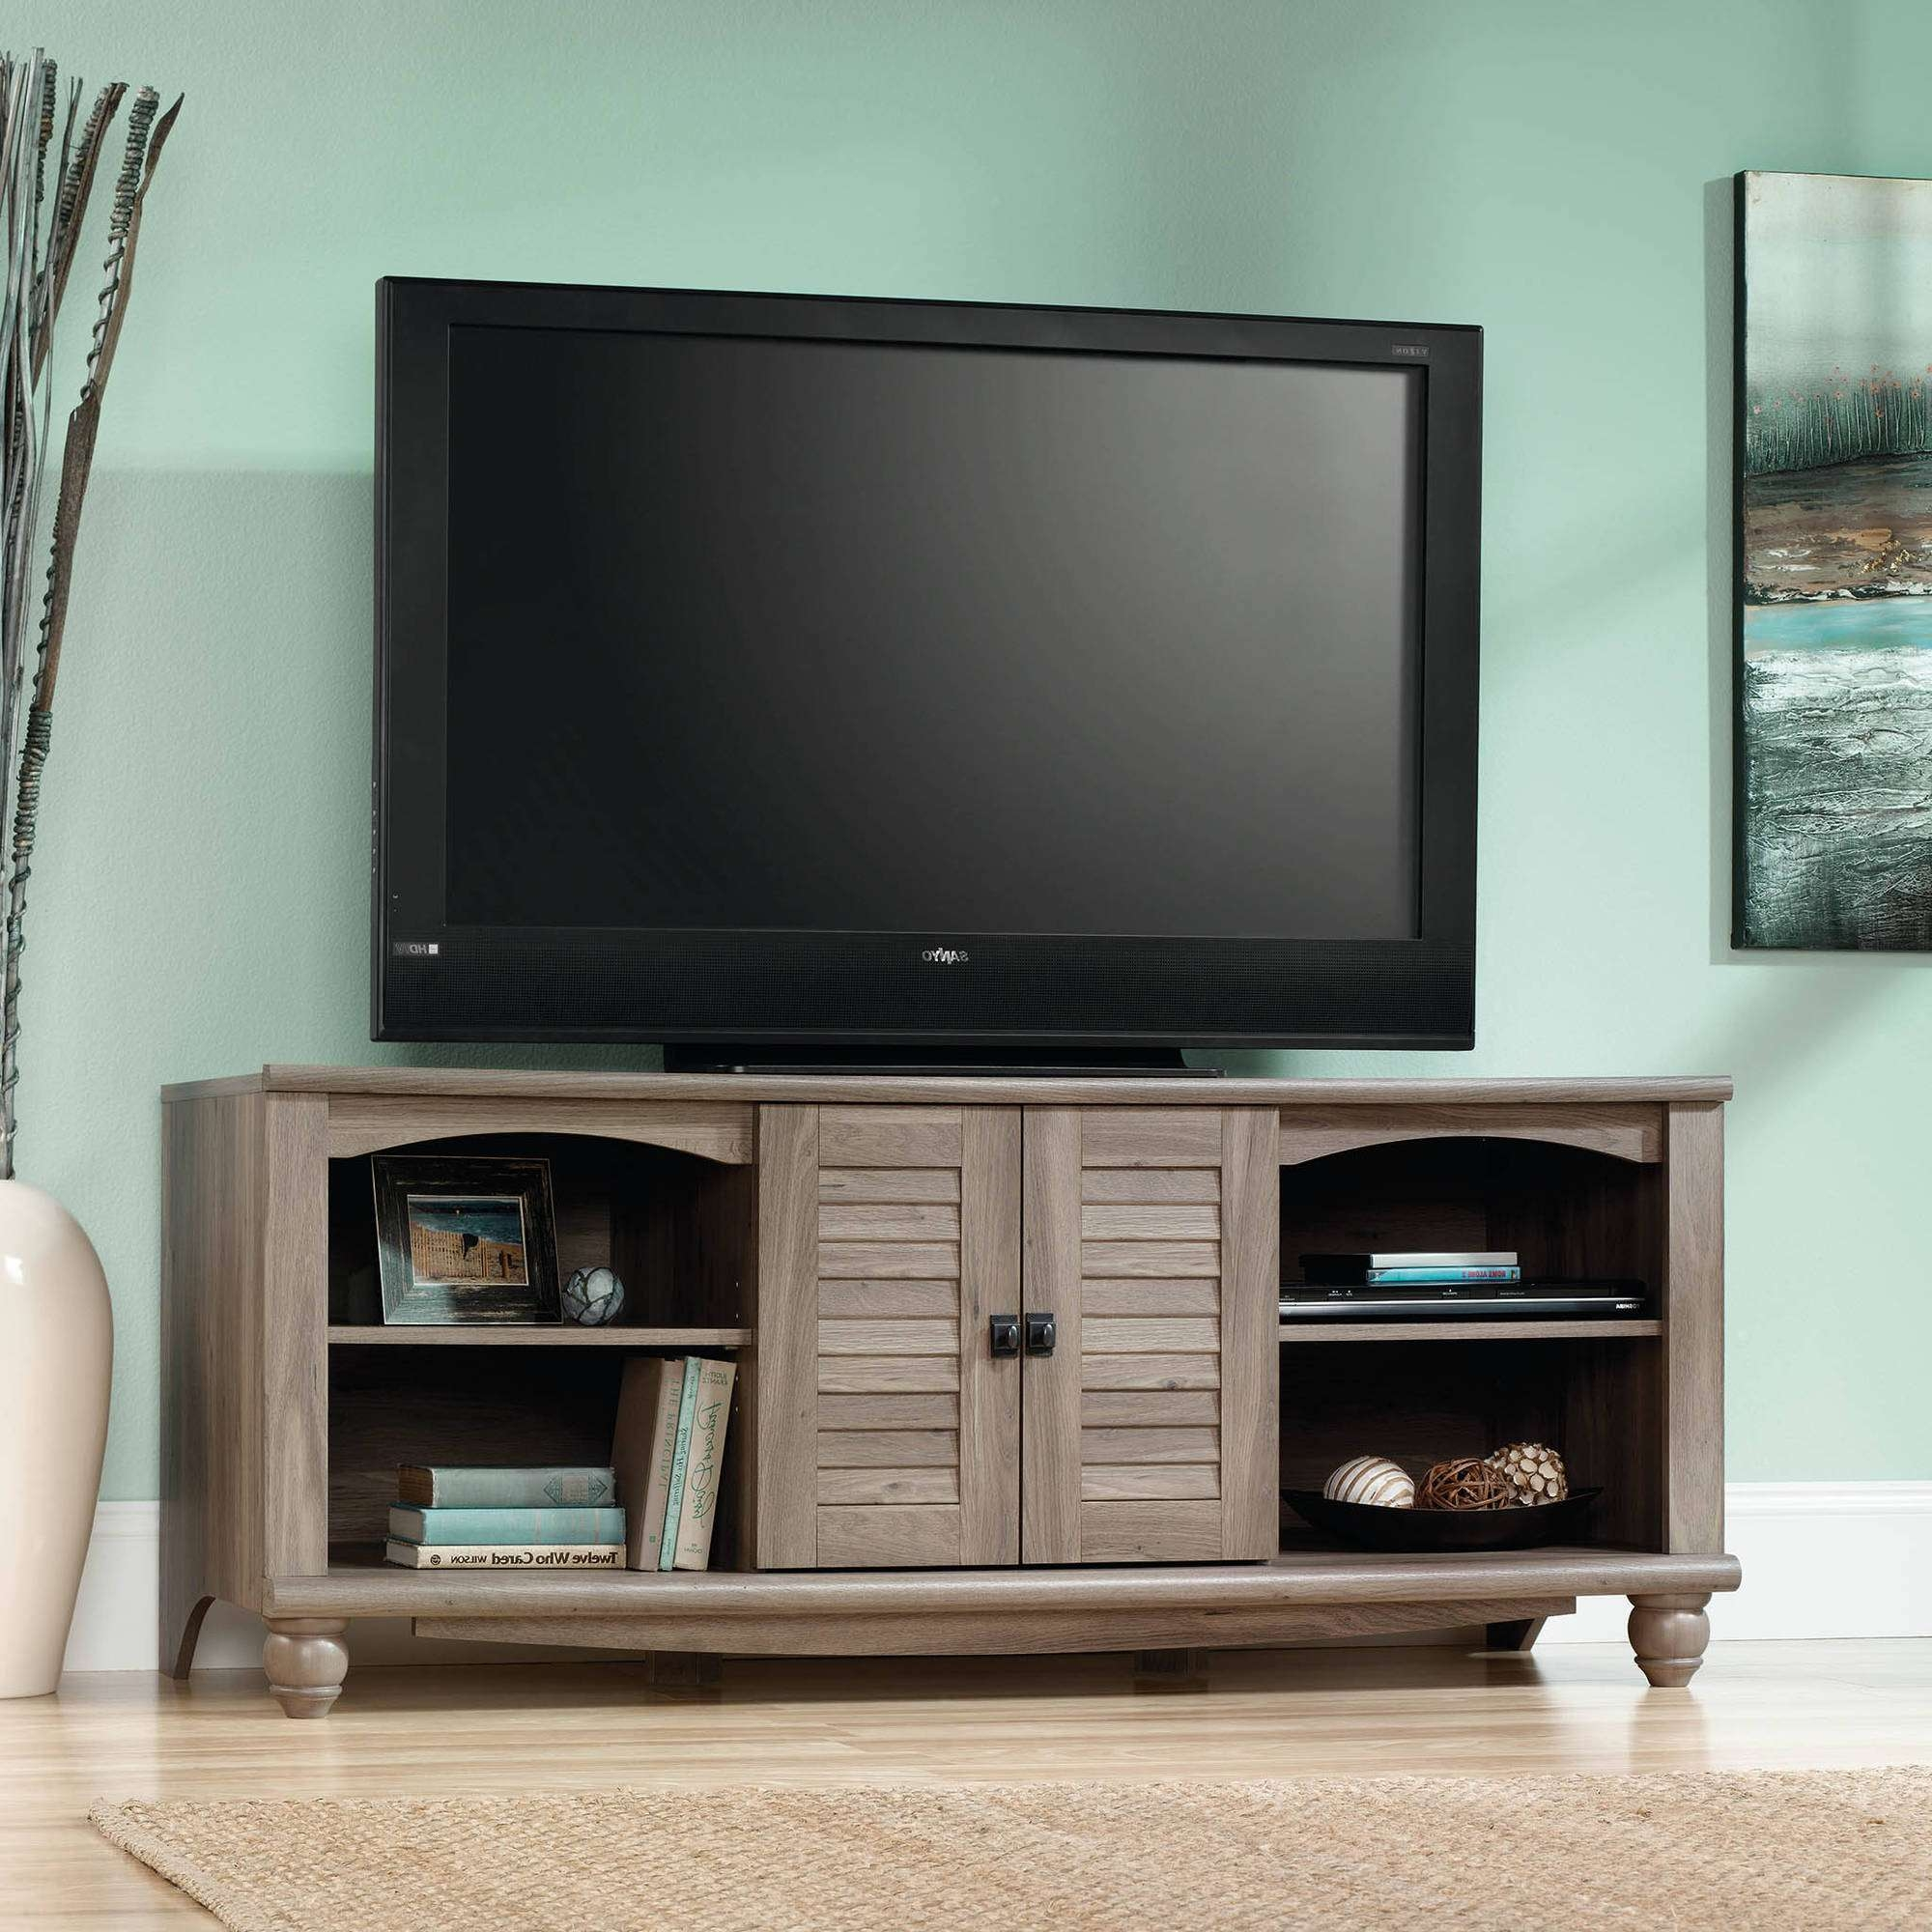 Tv : Small Tv Stand Beautiful Lane Tv Stands Whitney S Traditional Inside Lane Tv Stands (View 6 of 15)